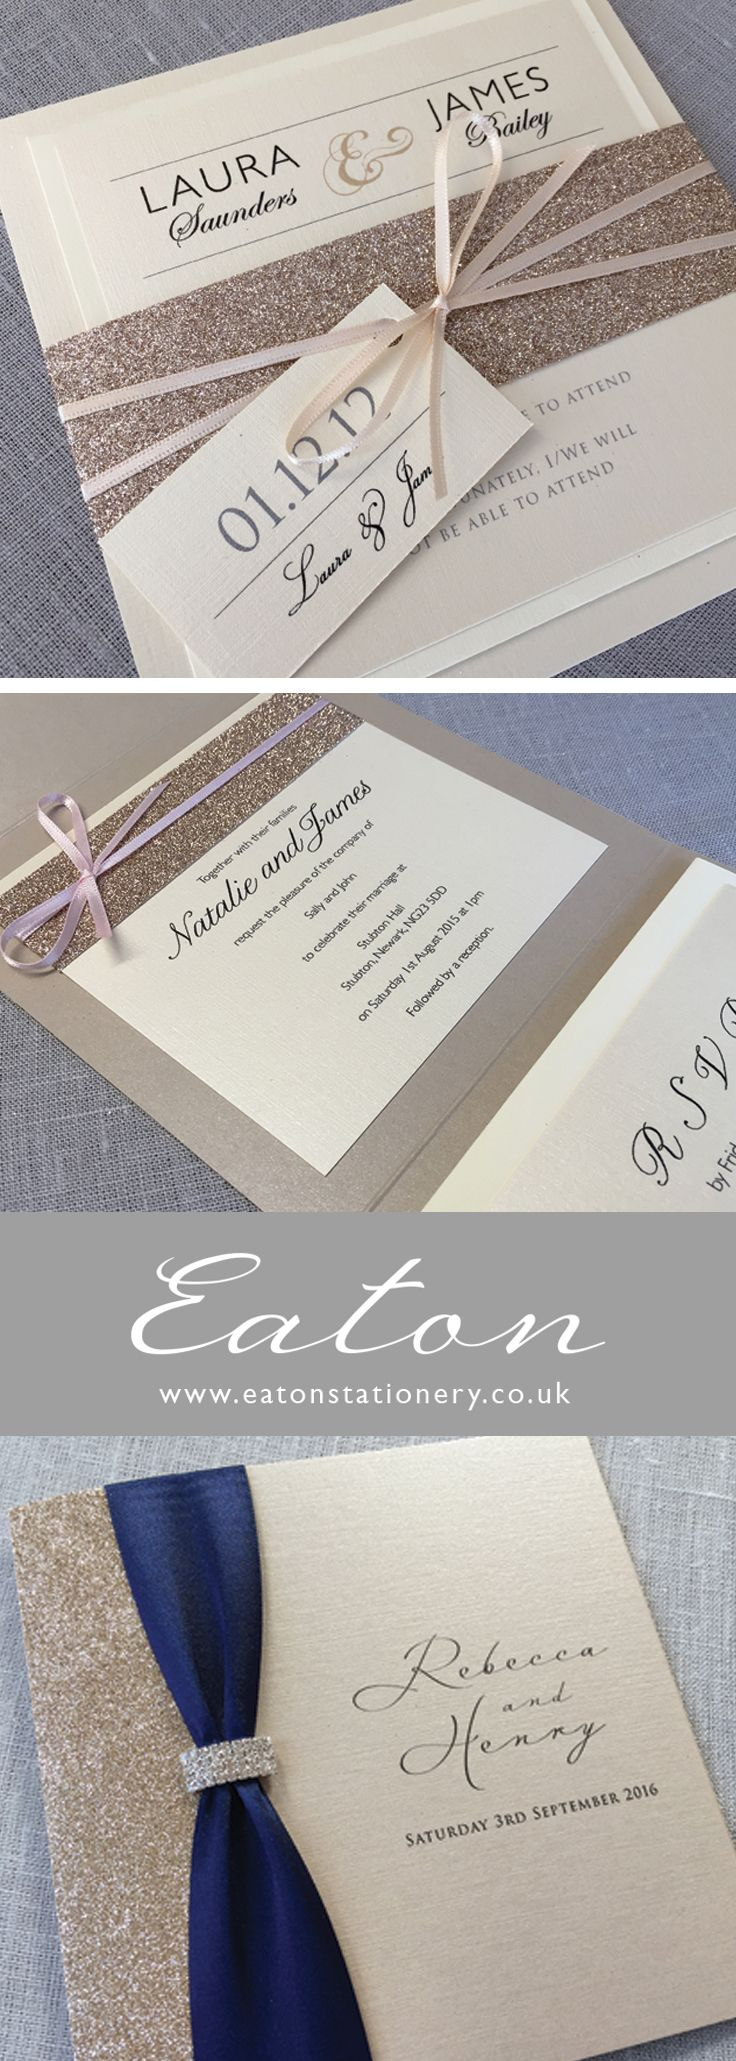 avery address labels wedding invitations%0A Beautiful wedding stationery lovingly made and designed in the UK  All  stationery is fully customisable with your wording and colour selections